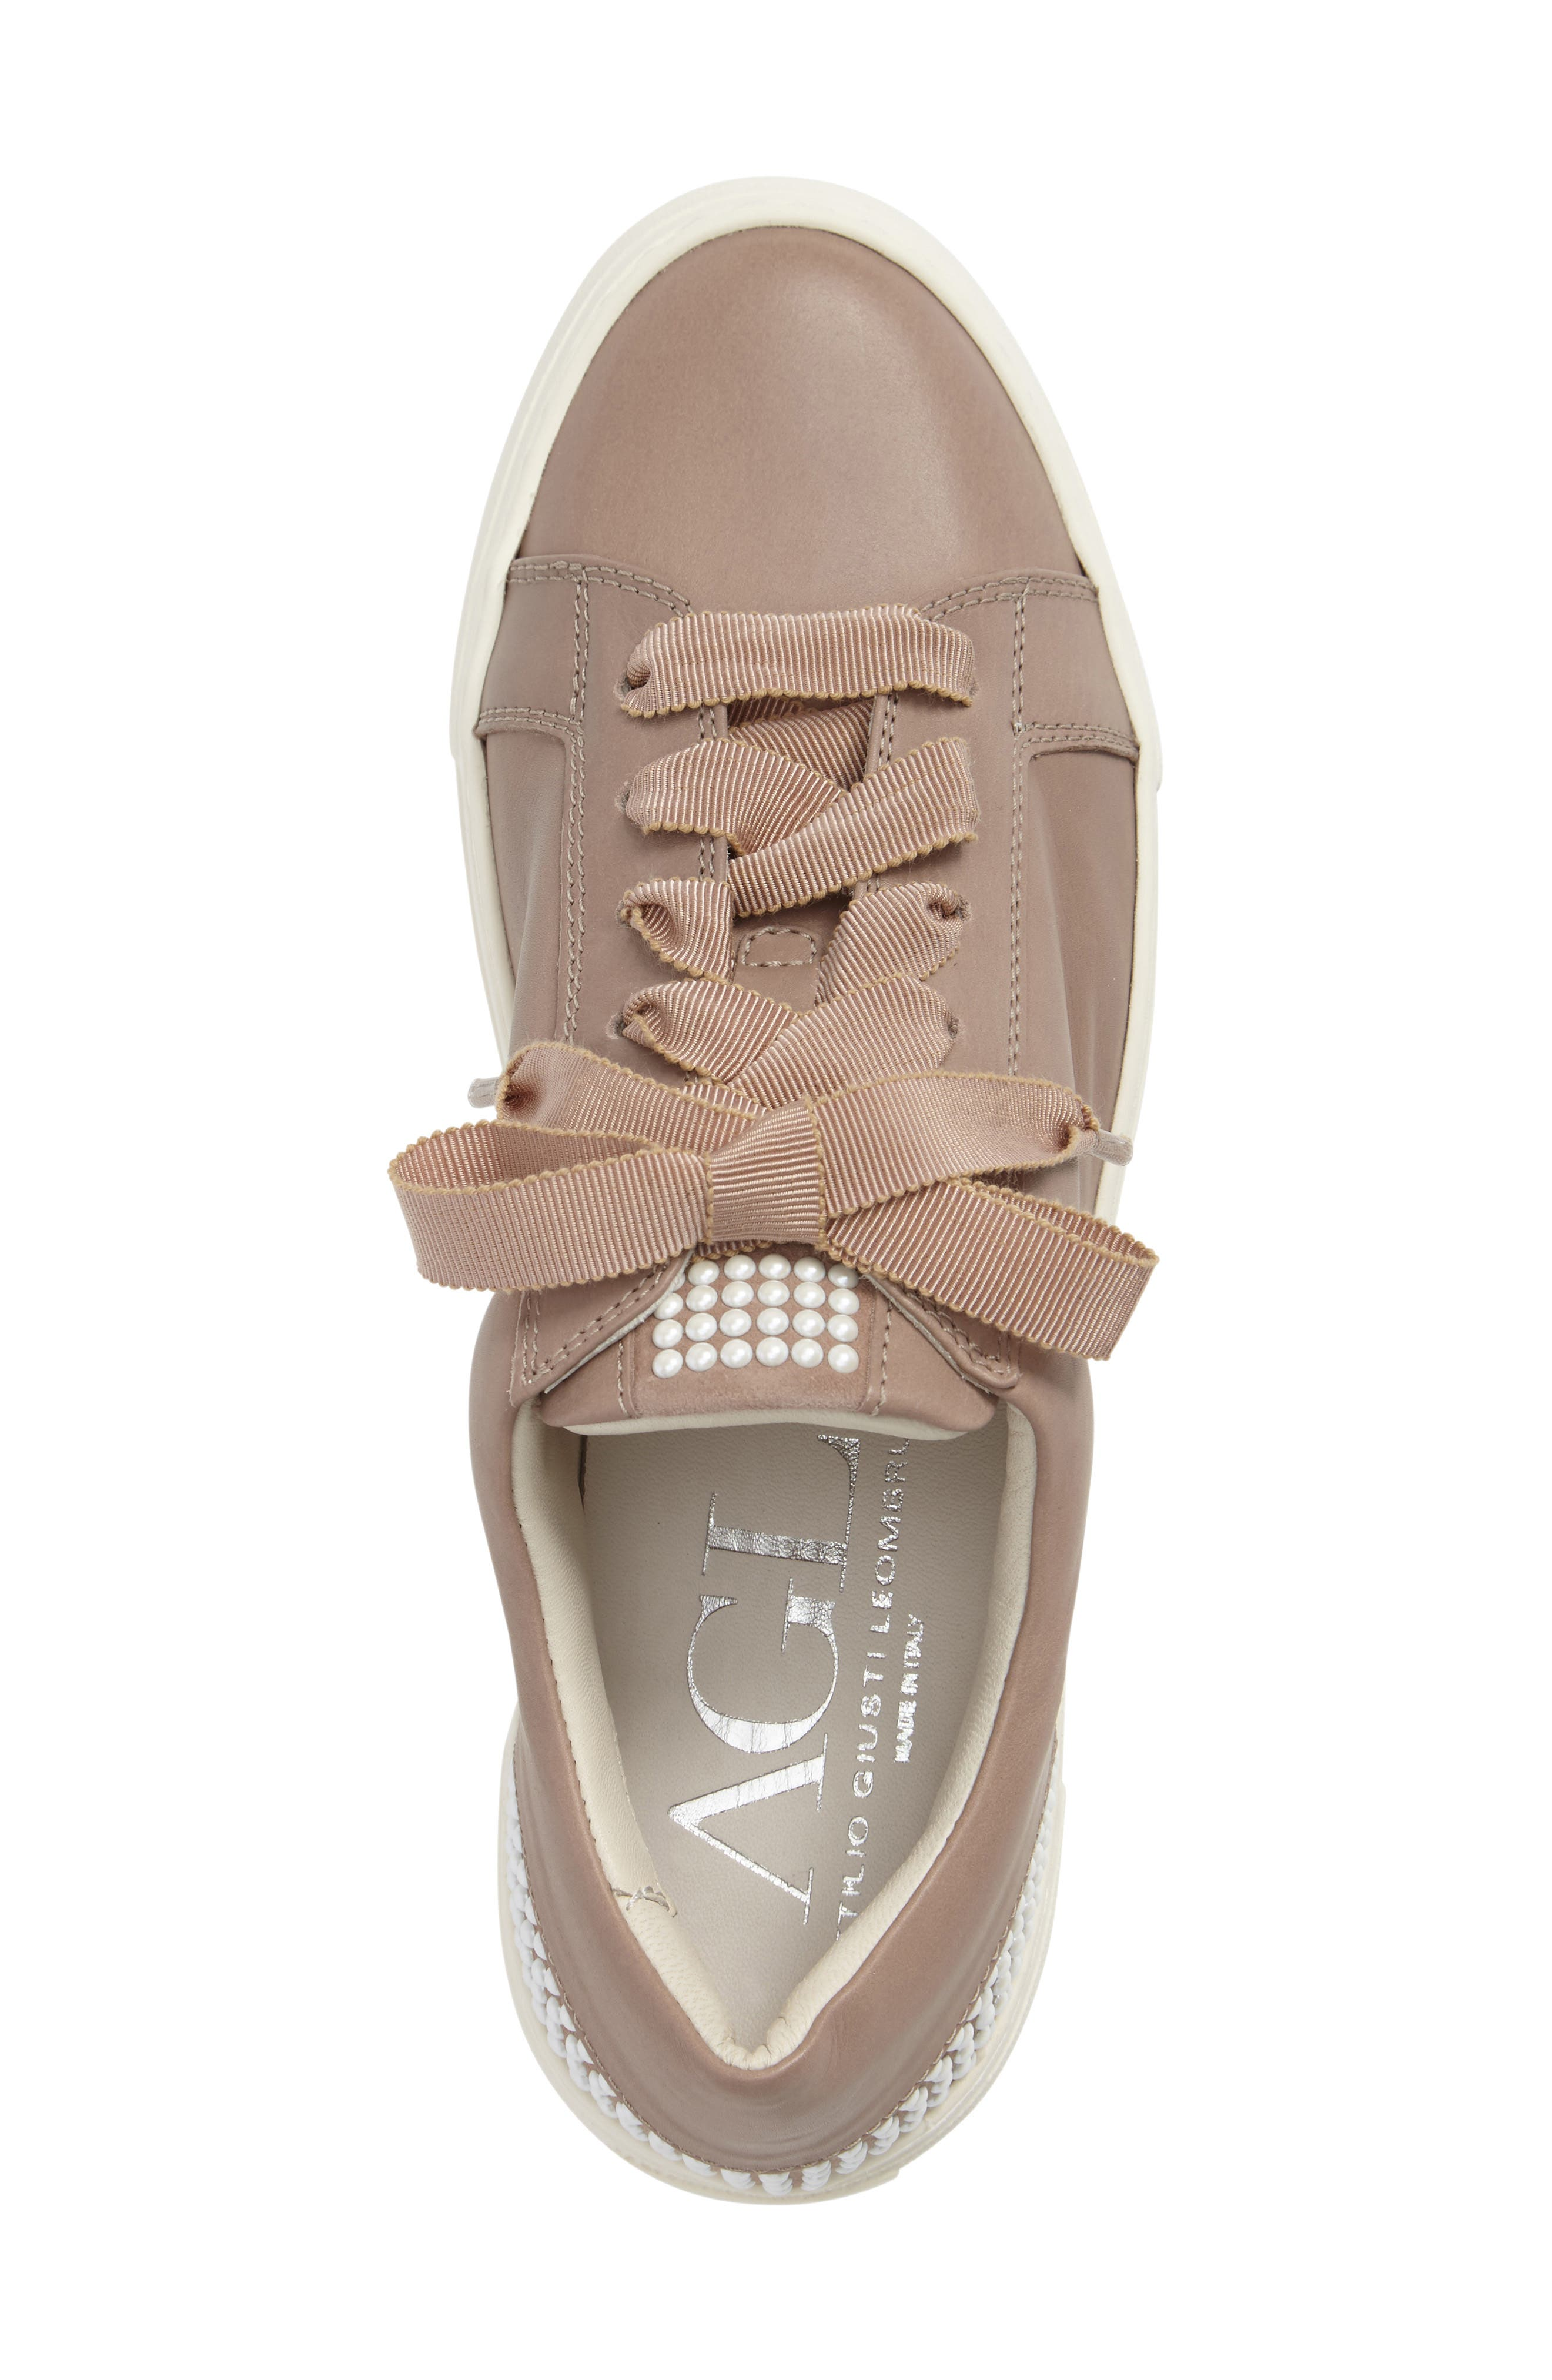 Pearl Sneaker,                             Alternate thumbnail 3, color,                             PALE LEATHER